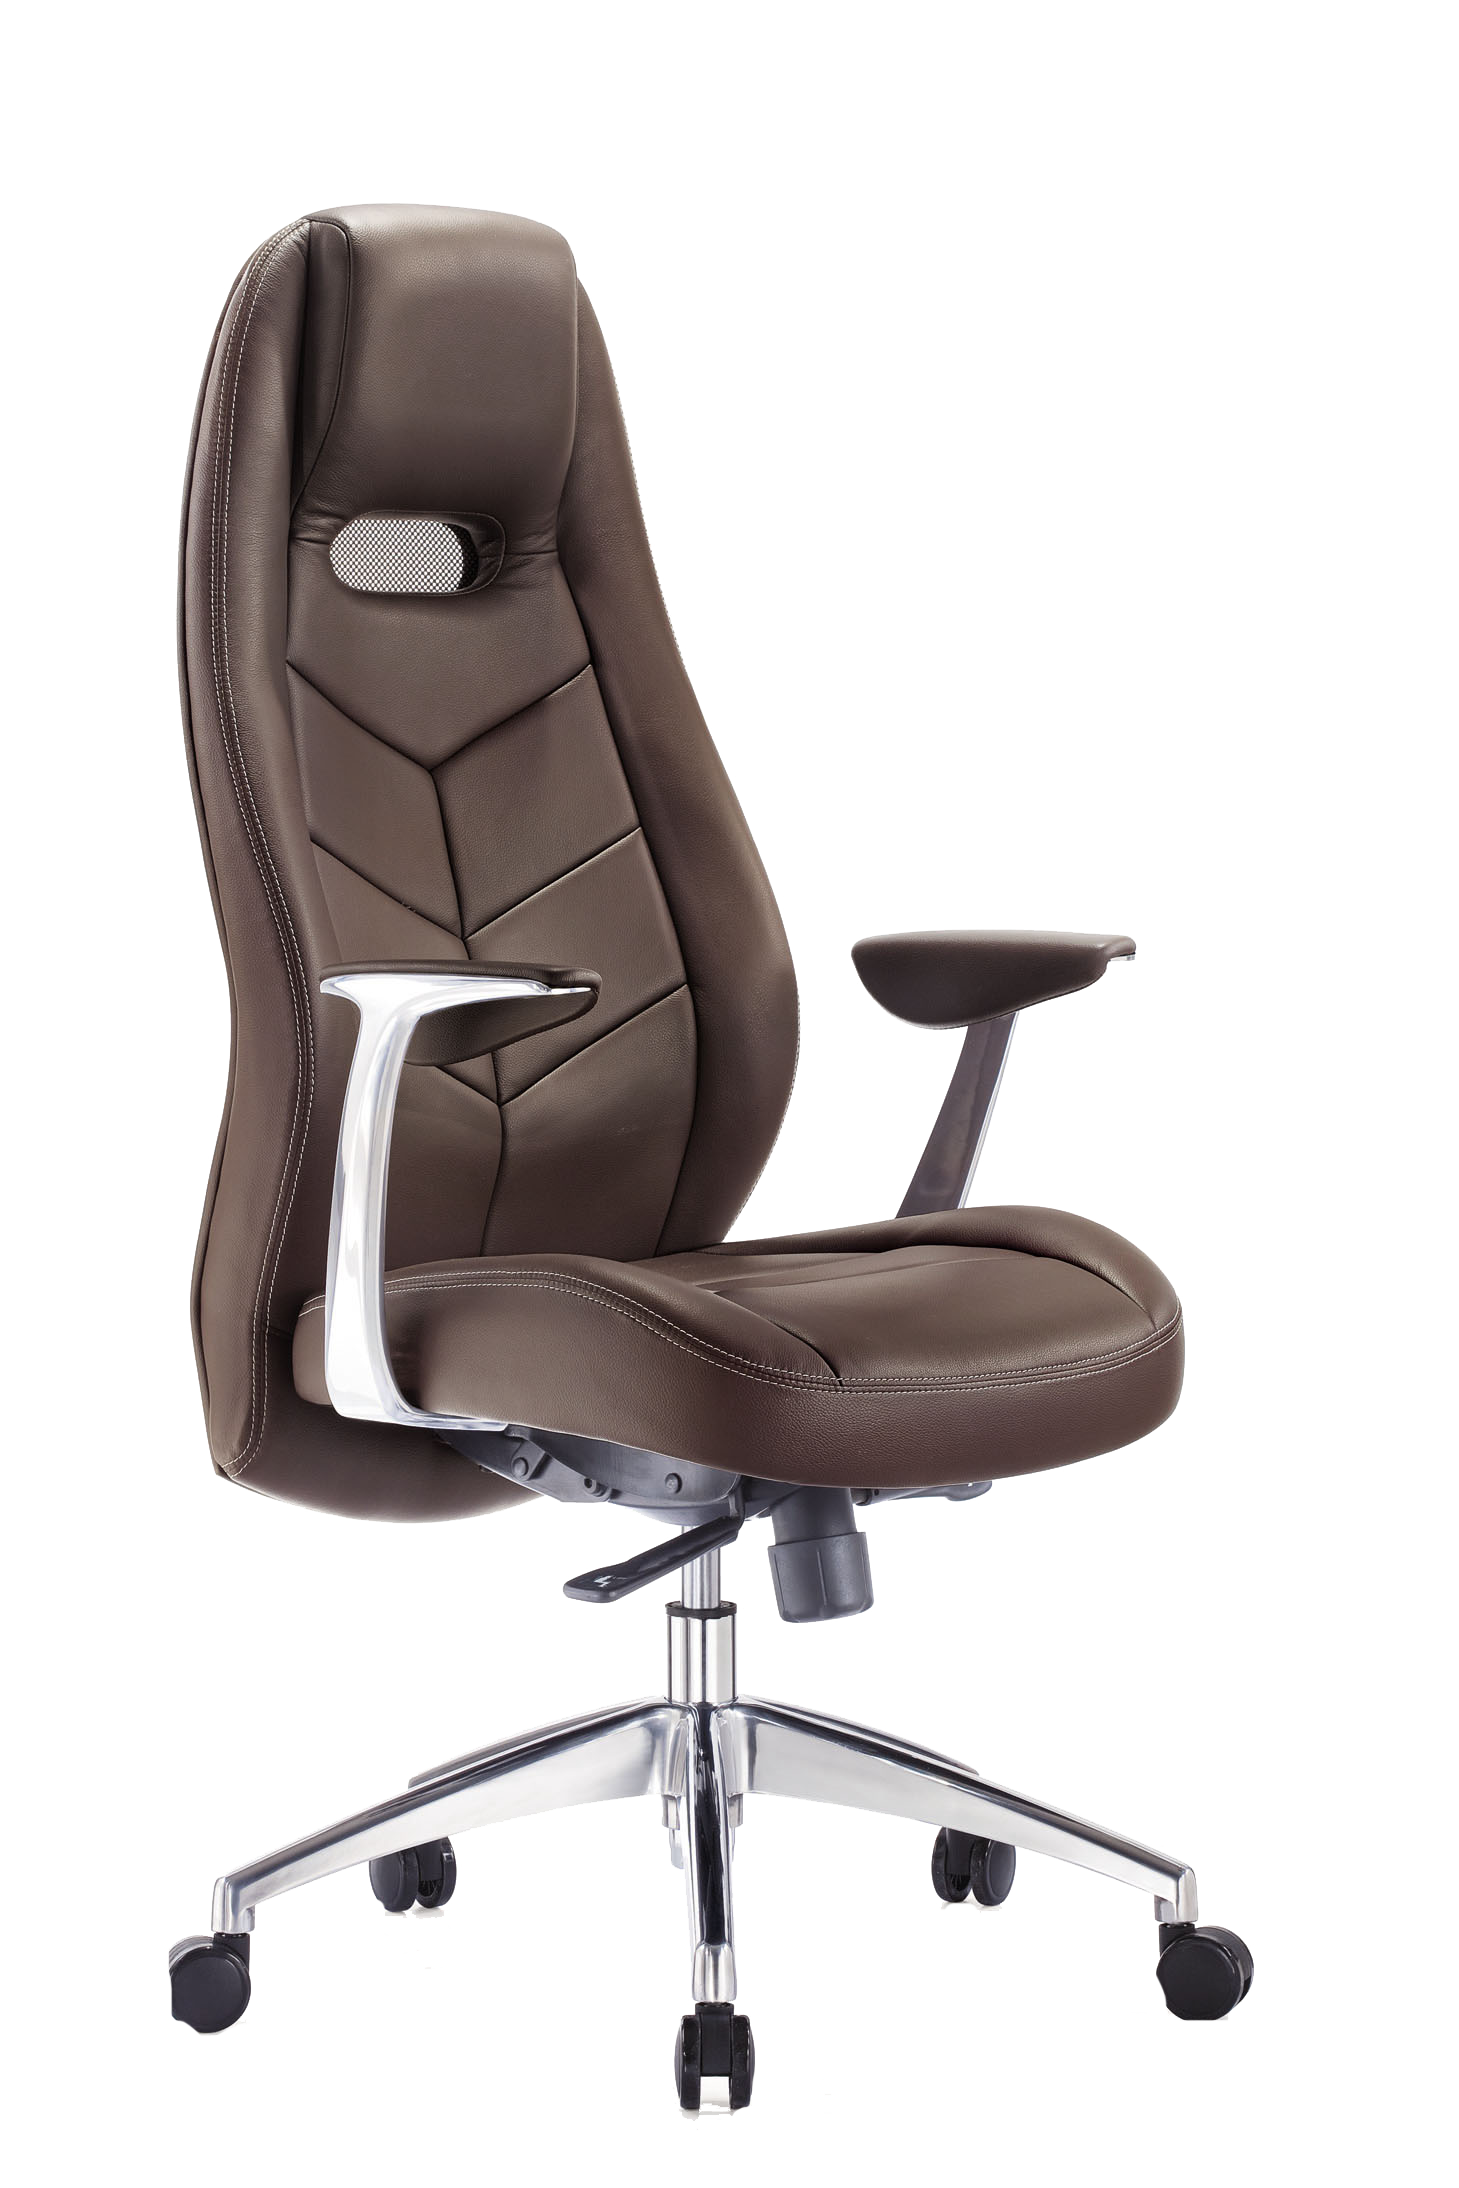 Gaming chair png. Images free download office